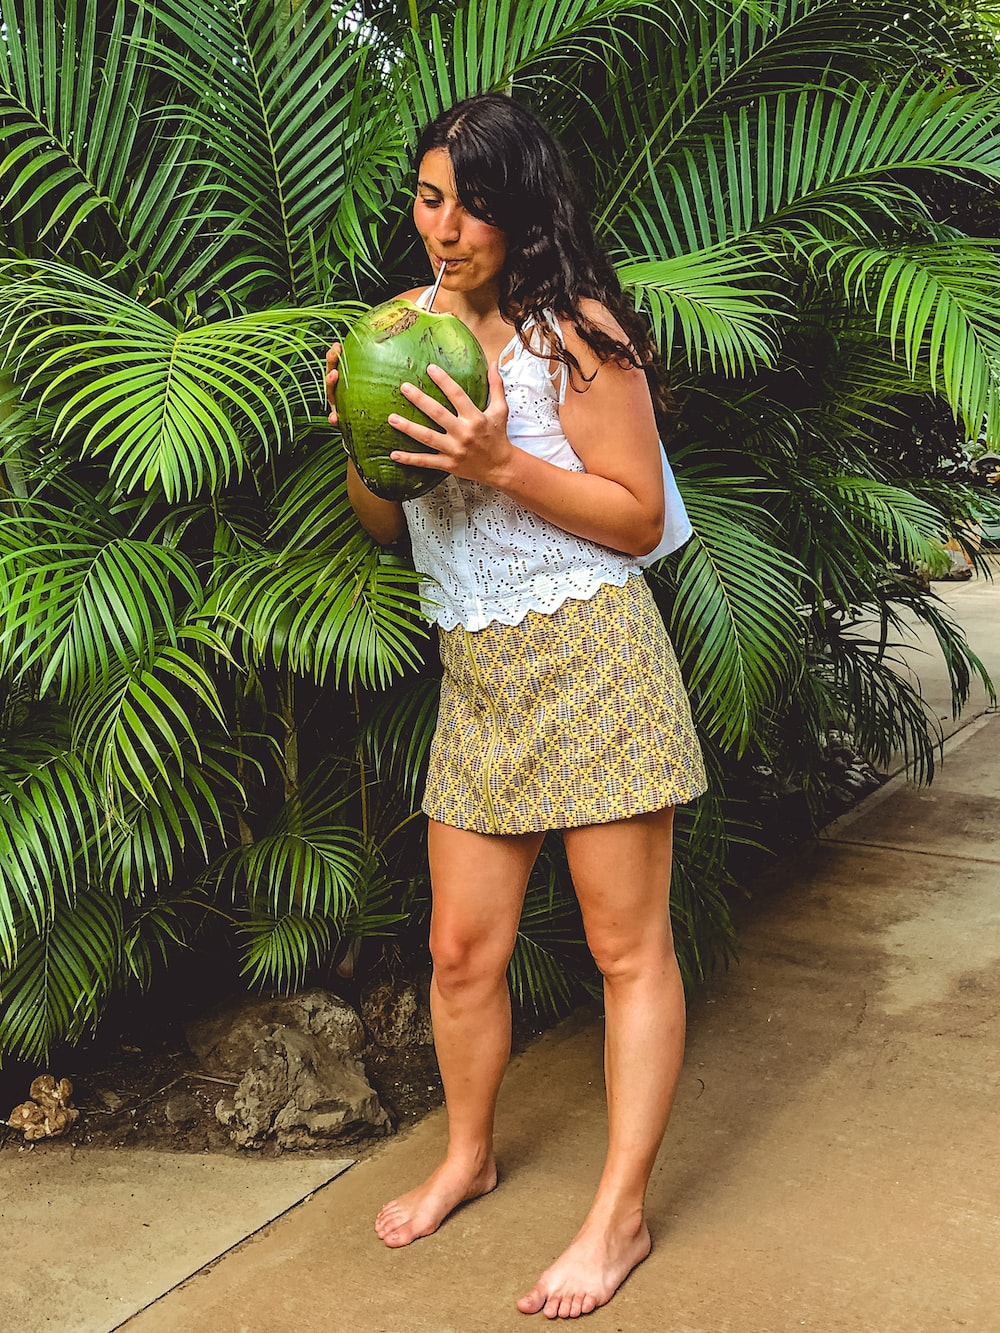 woman drinking coconut juice standing beside palm plant